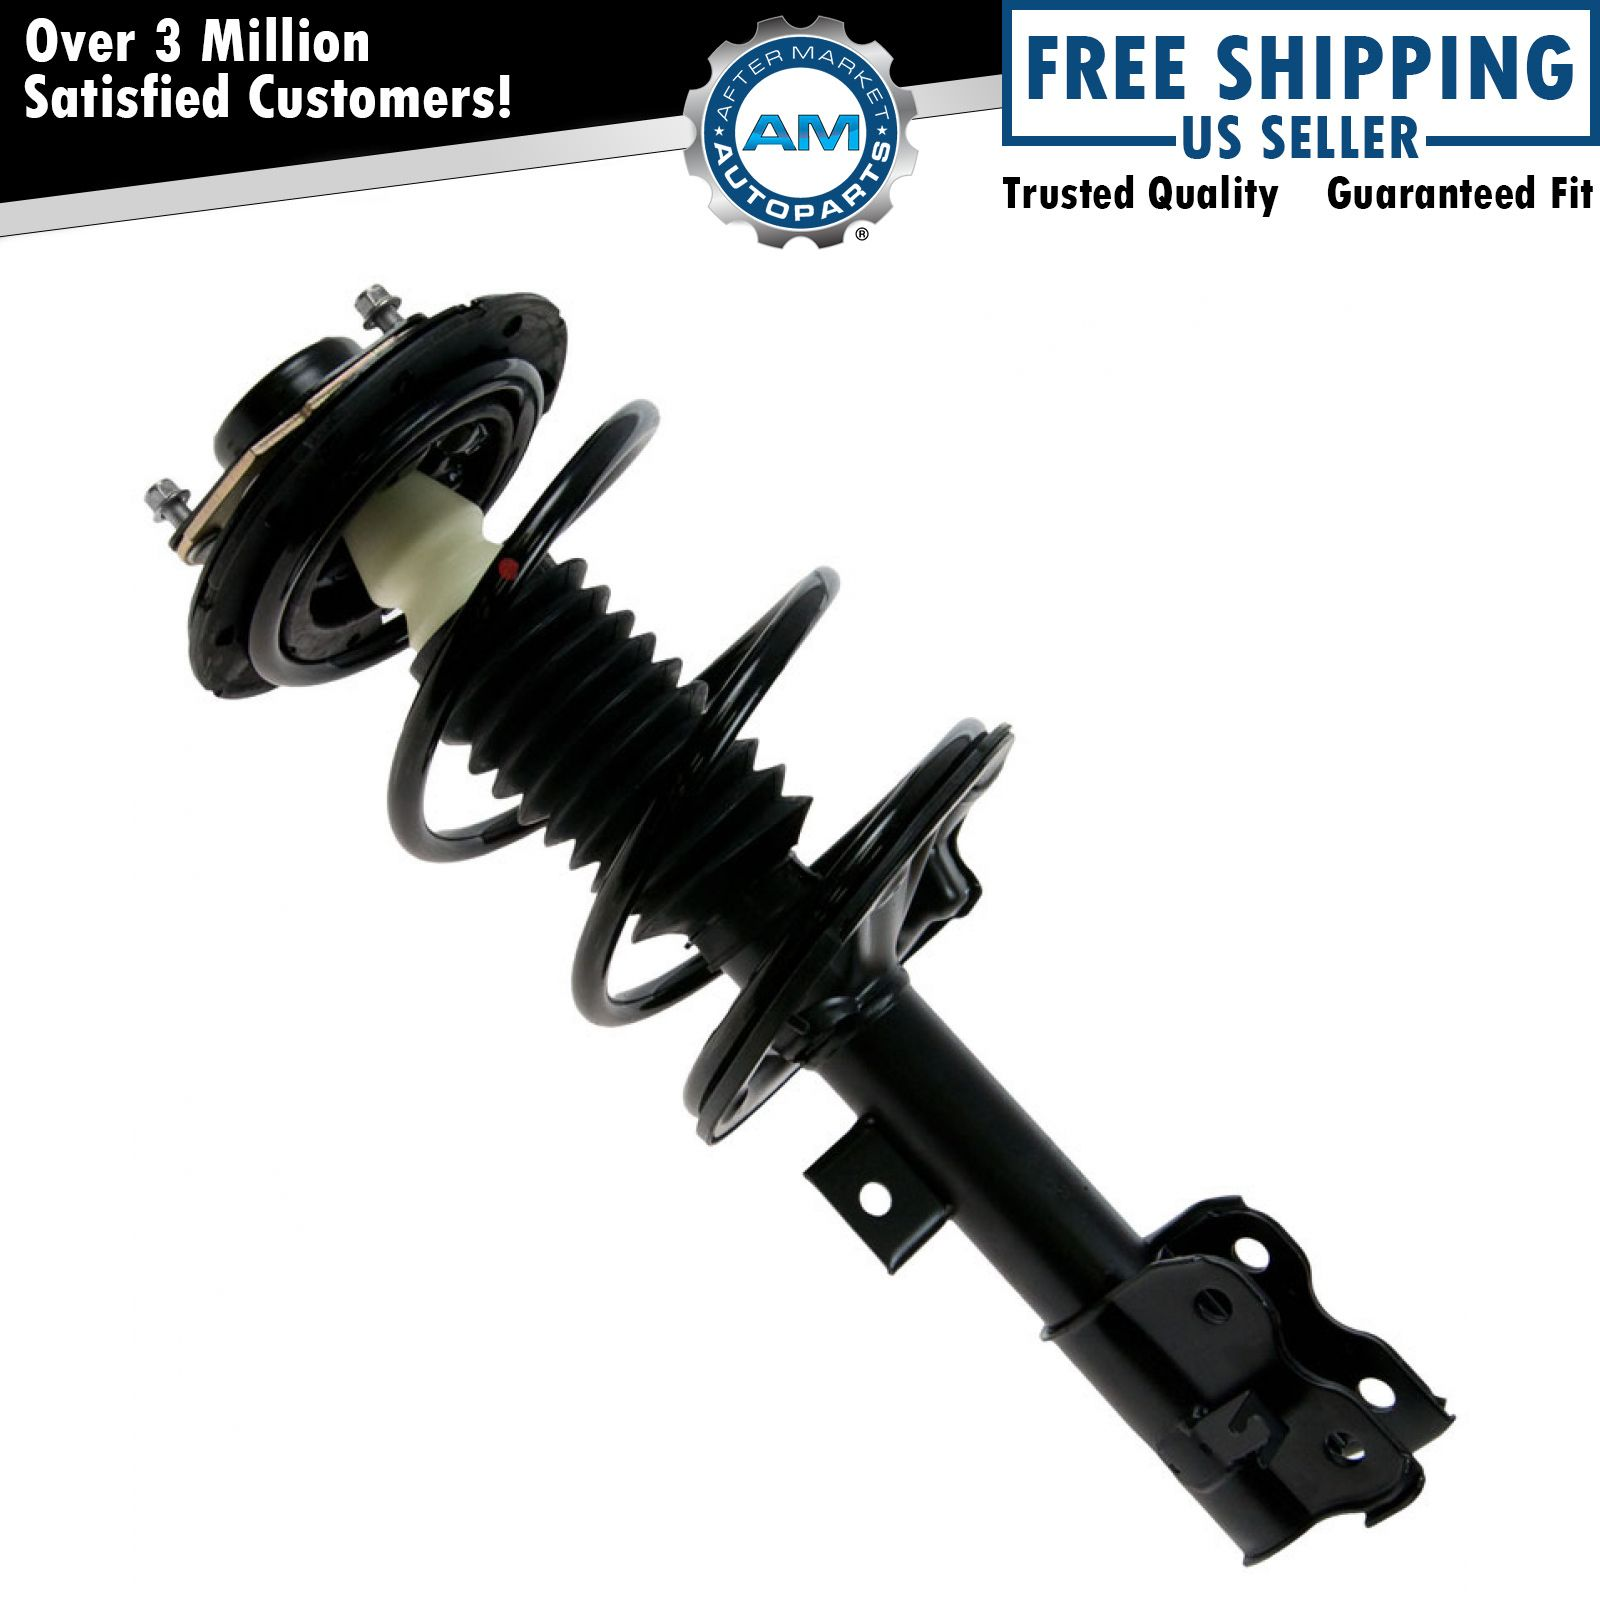 Toyota Tundra Spring Assembly Front Seat Back Right: Front Strut & Spring Assembly Right Passenger Side RH RF